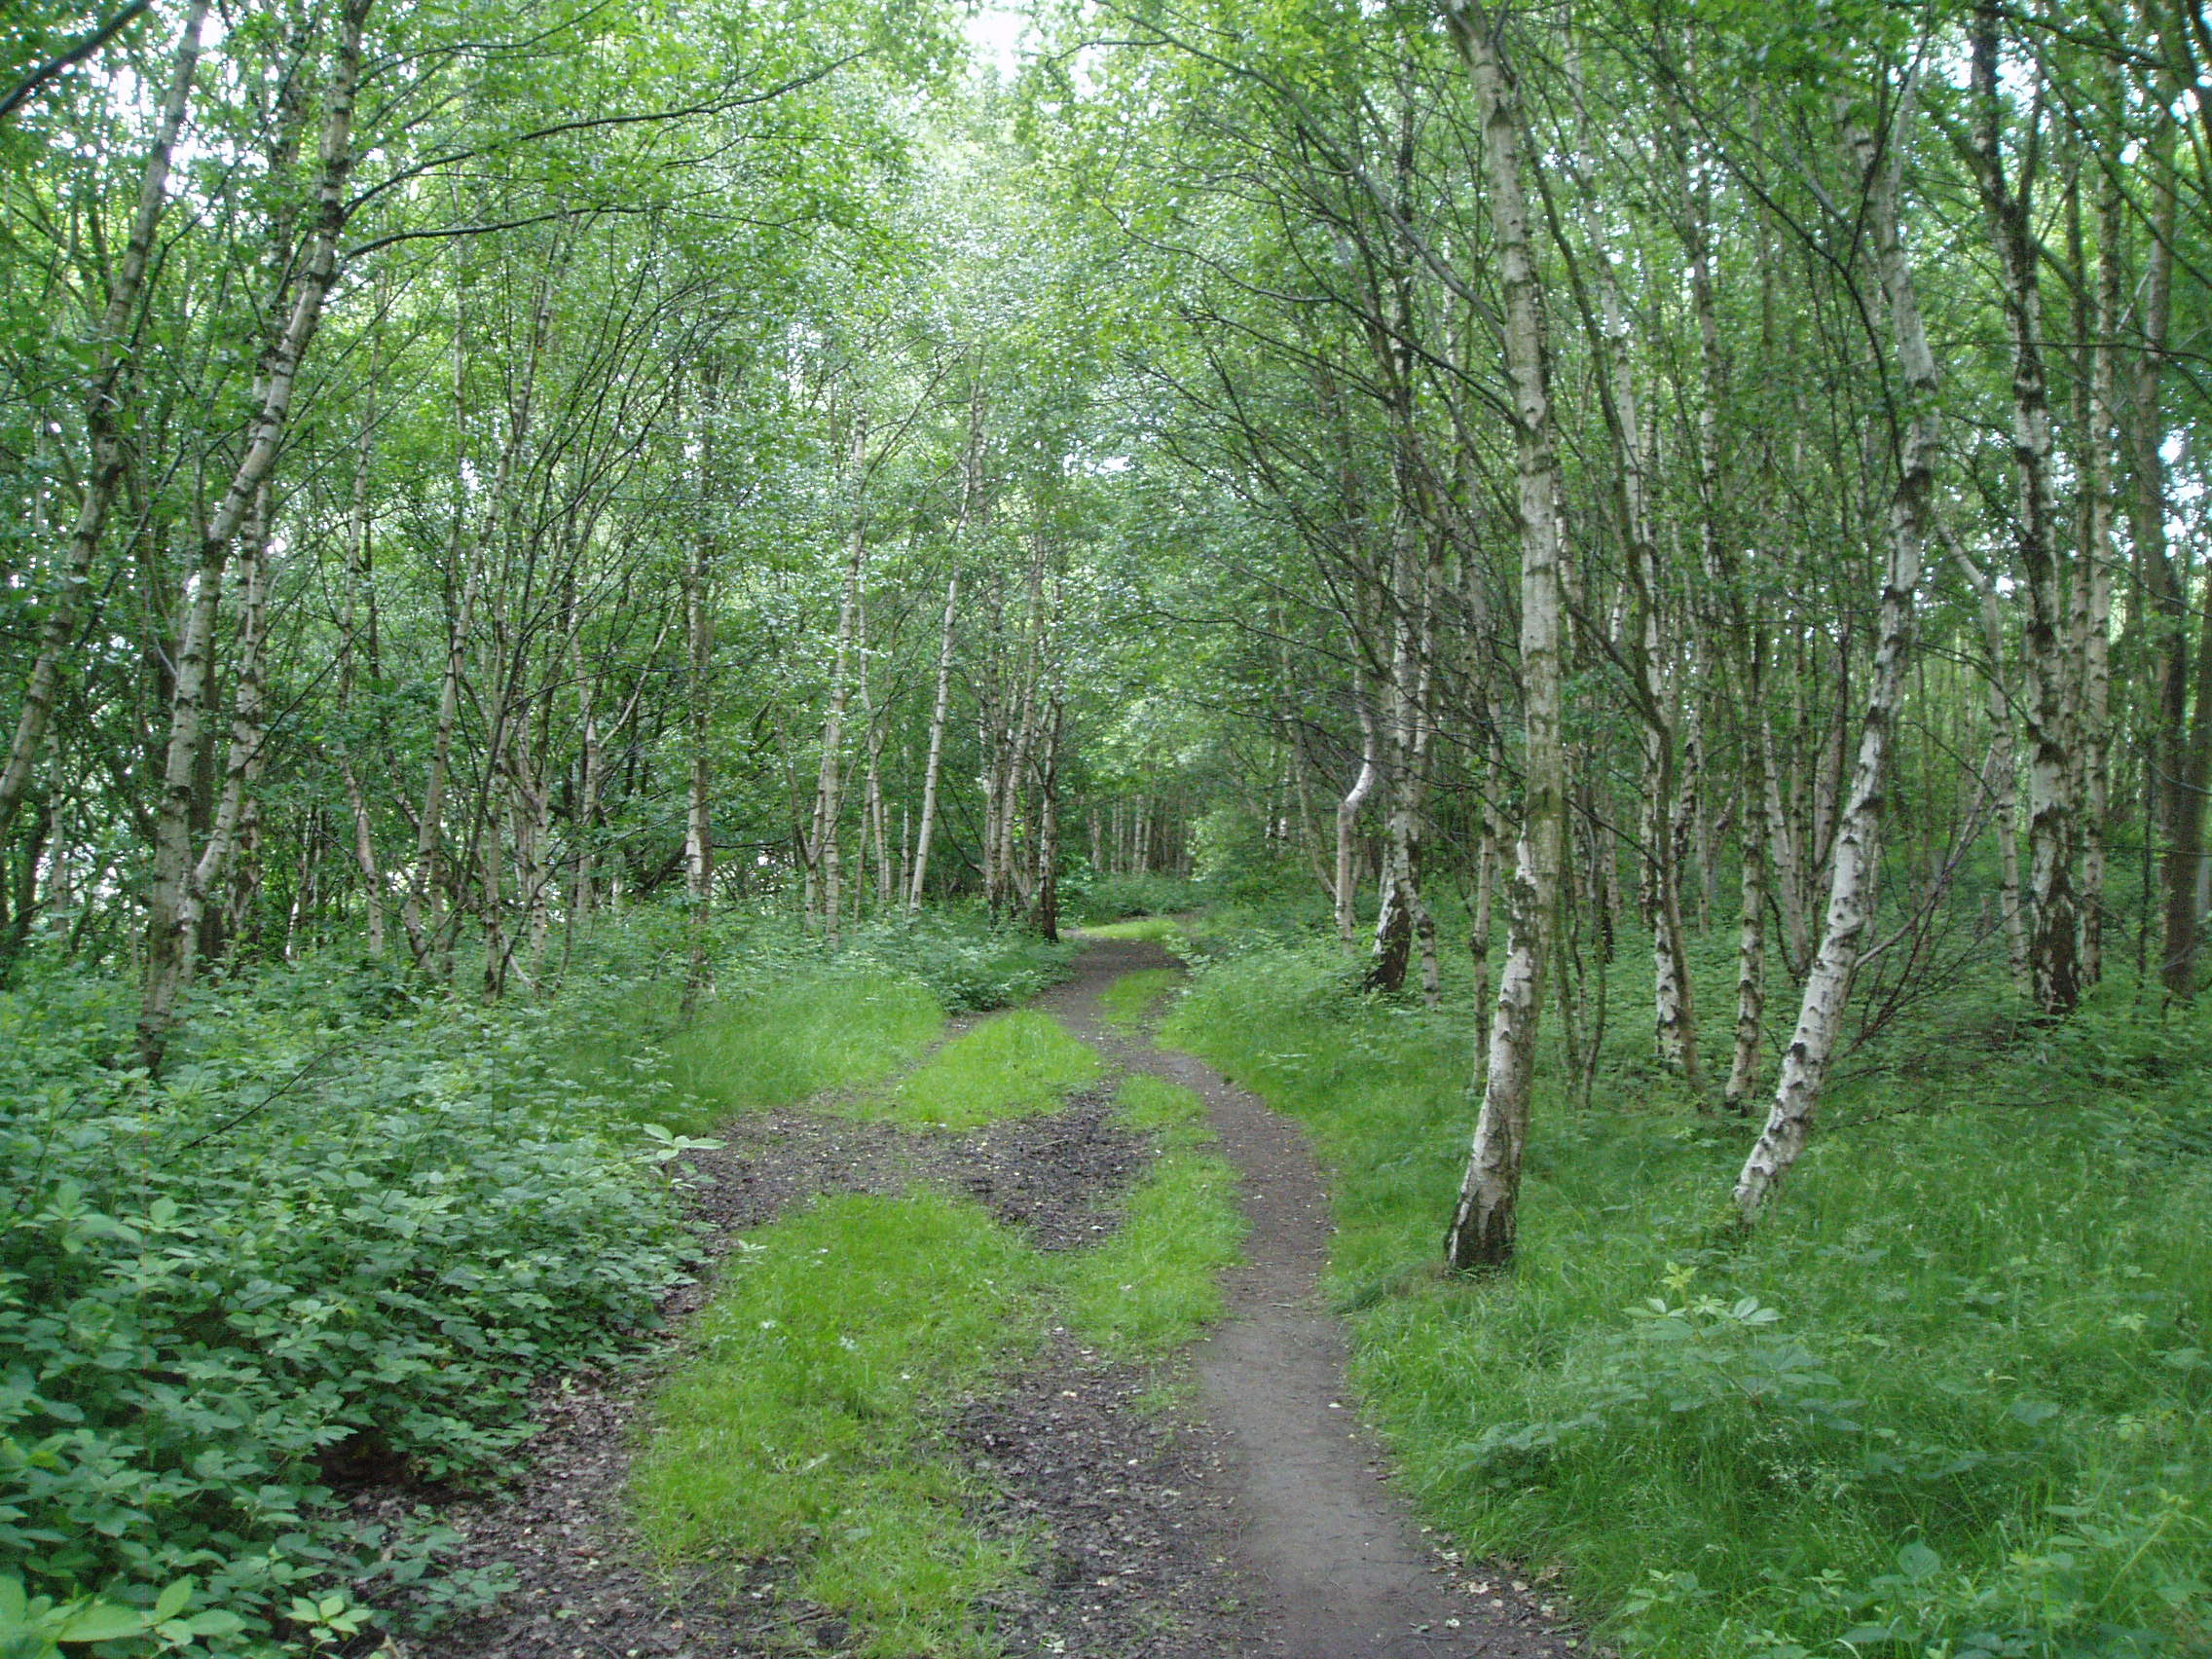 The path through woodland